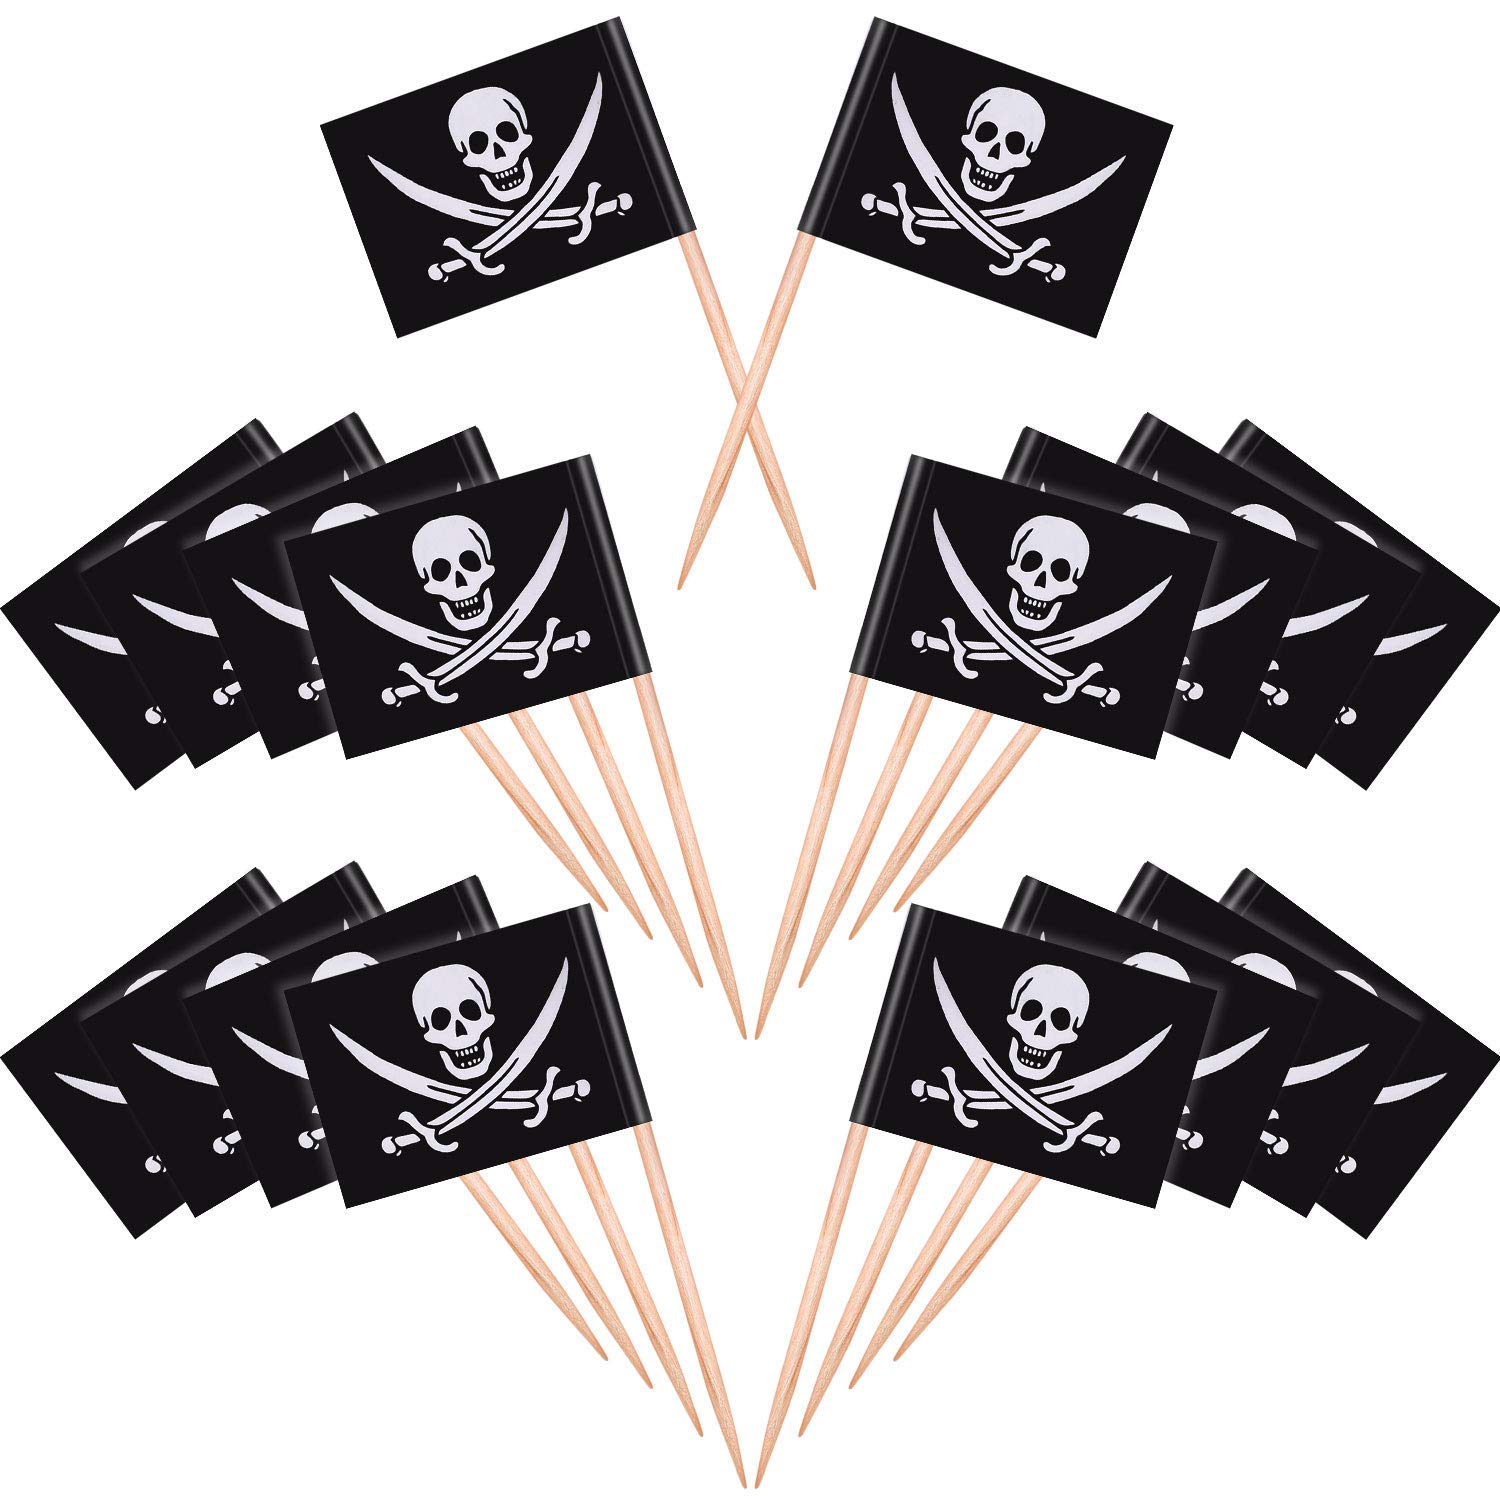 picture regarding Pirate Flag Printable named Reasonably priced Printable Pirate Flags, locate Printable Pirate Flags